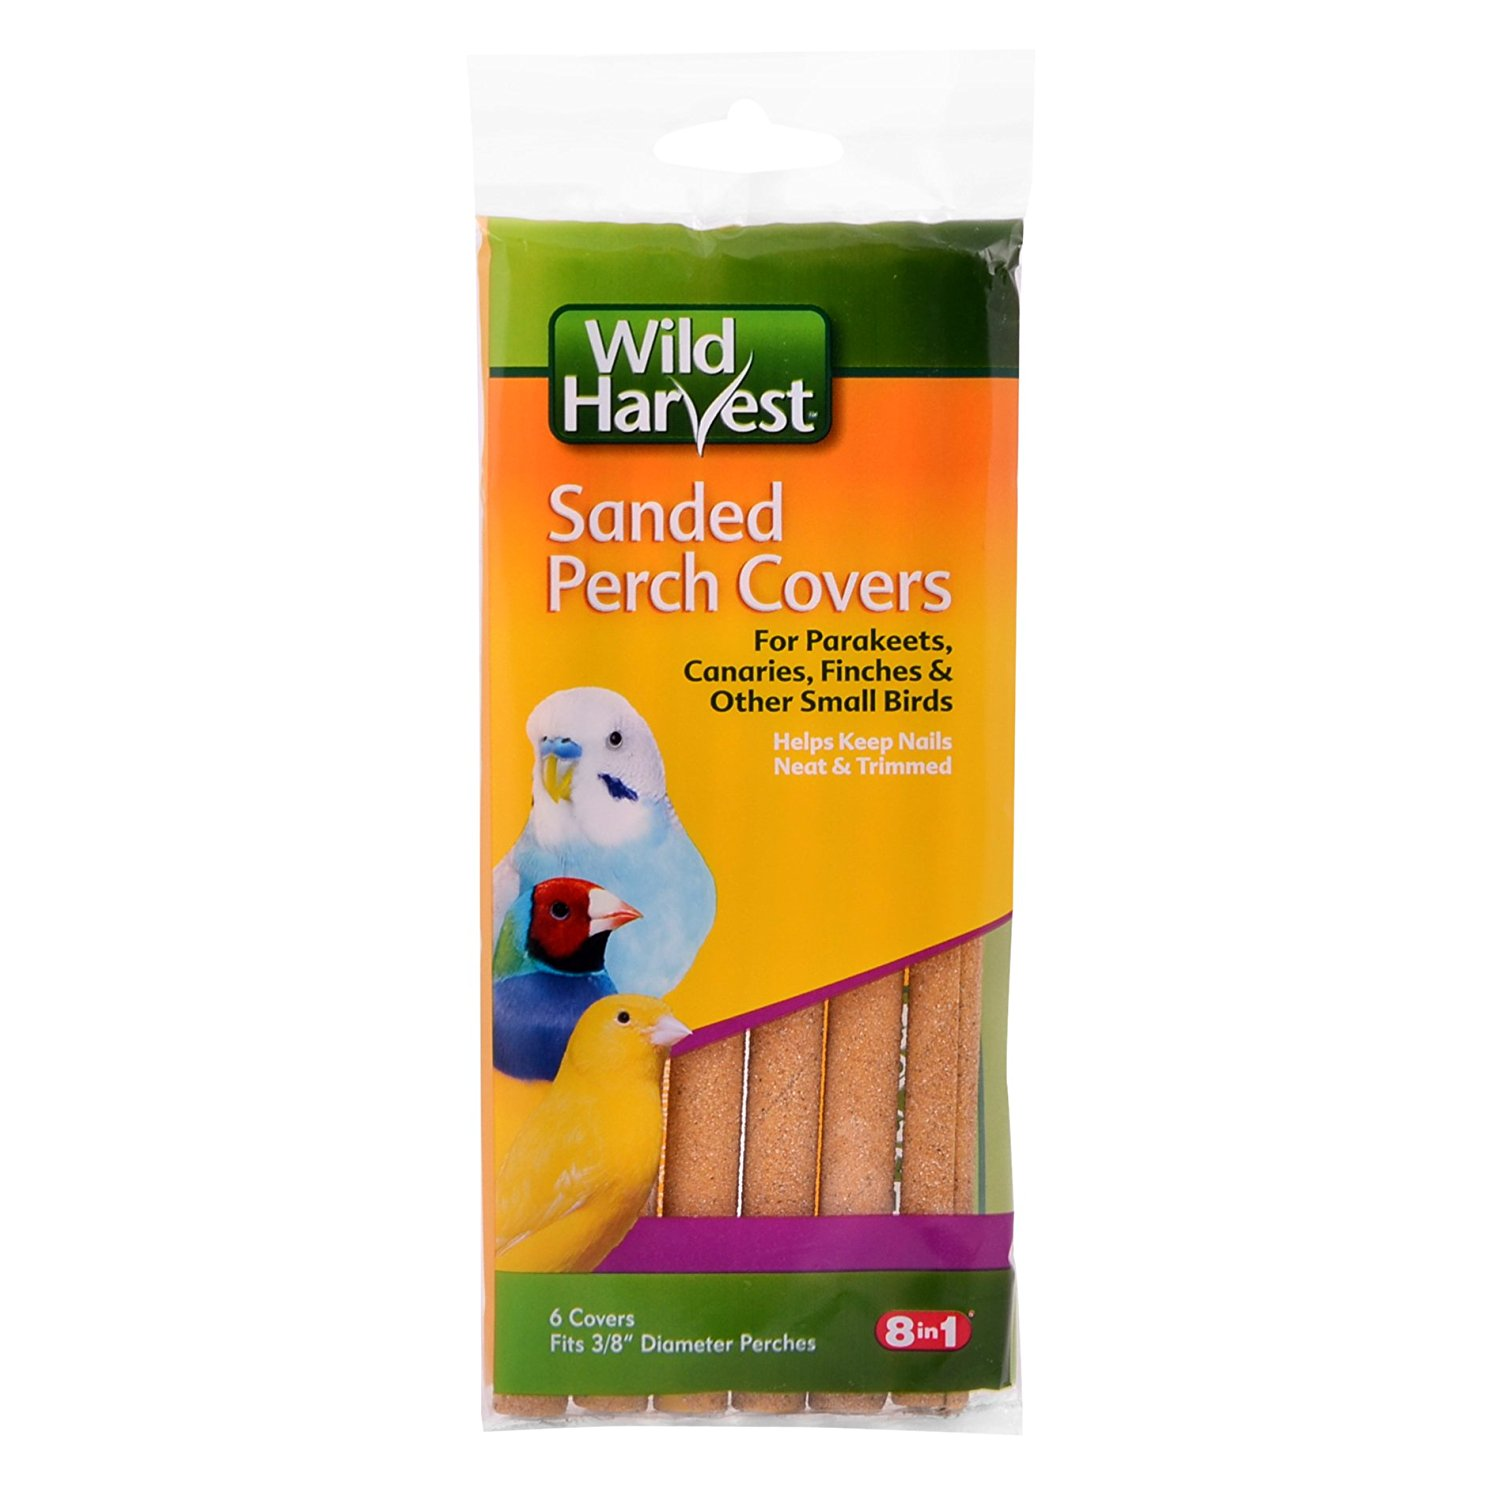 Wild Harvest Sanded Perch Covers for Small Birds, 6-Count